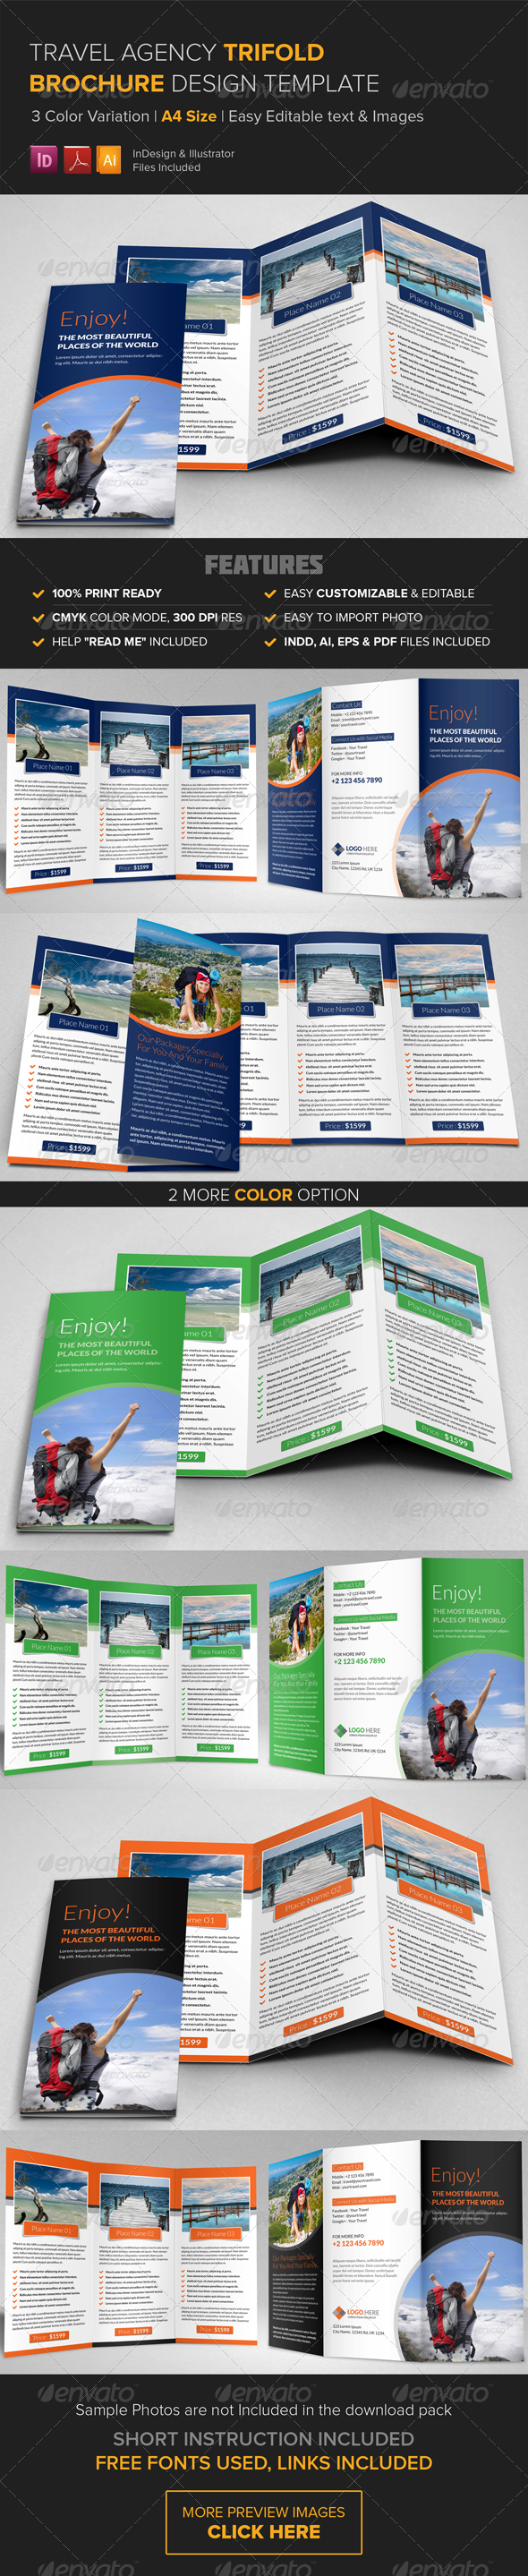 GraphicRiver Travel Agency Trifold Brochure Template 8430700